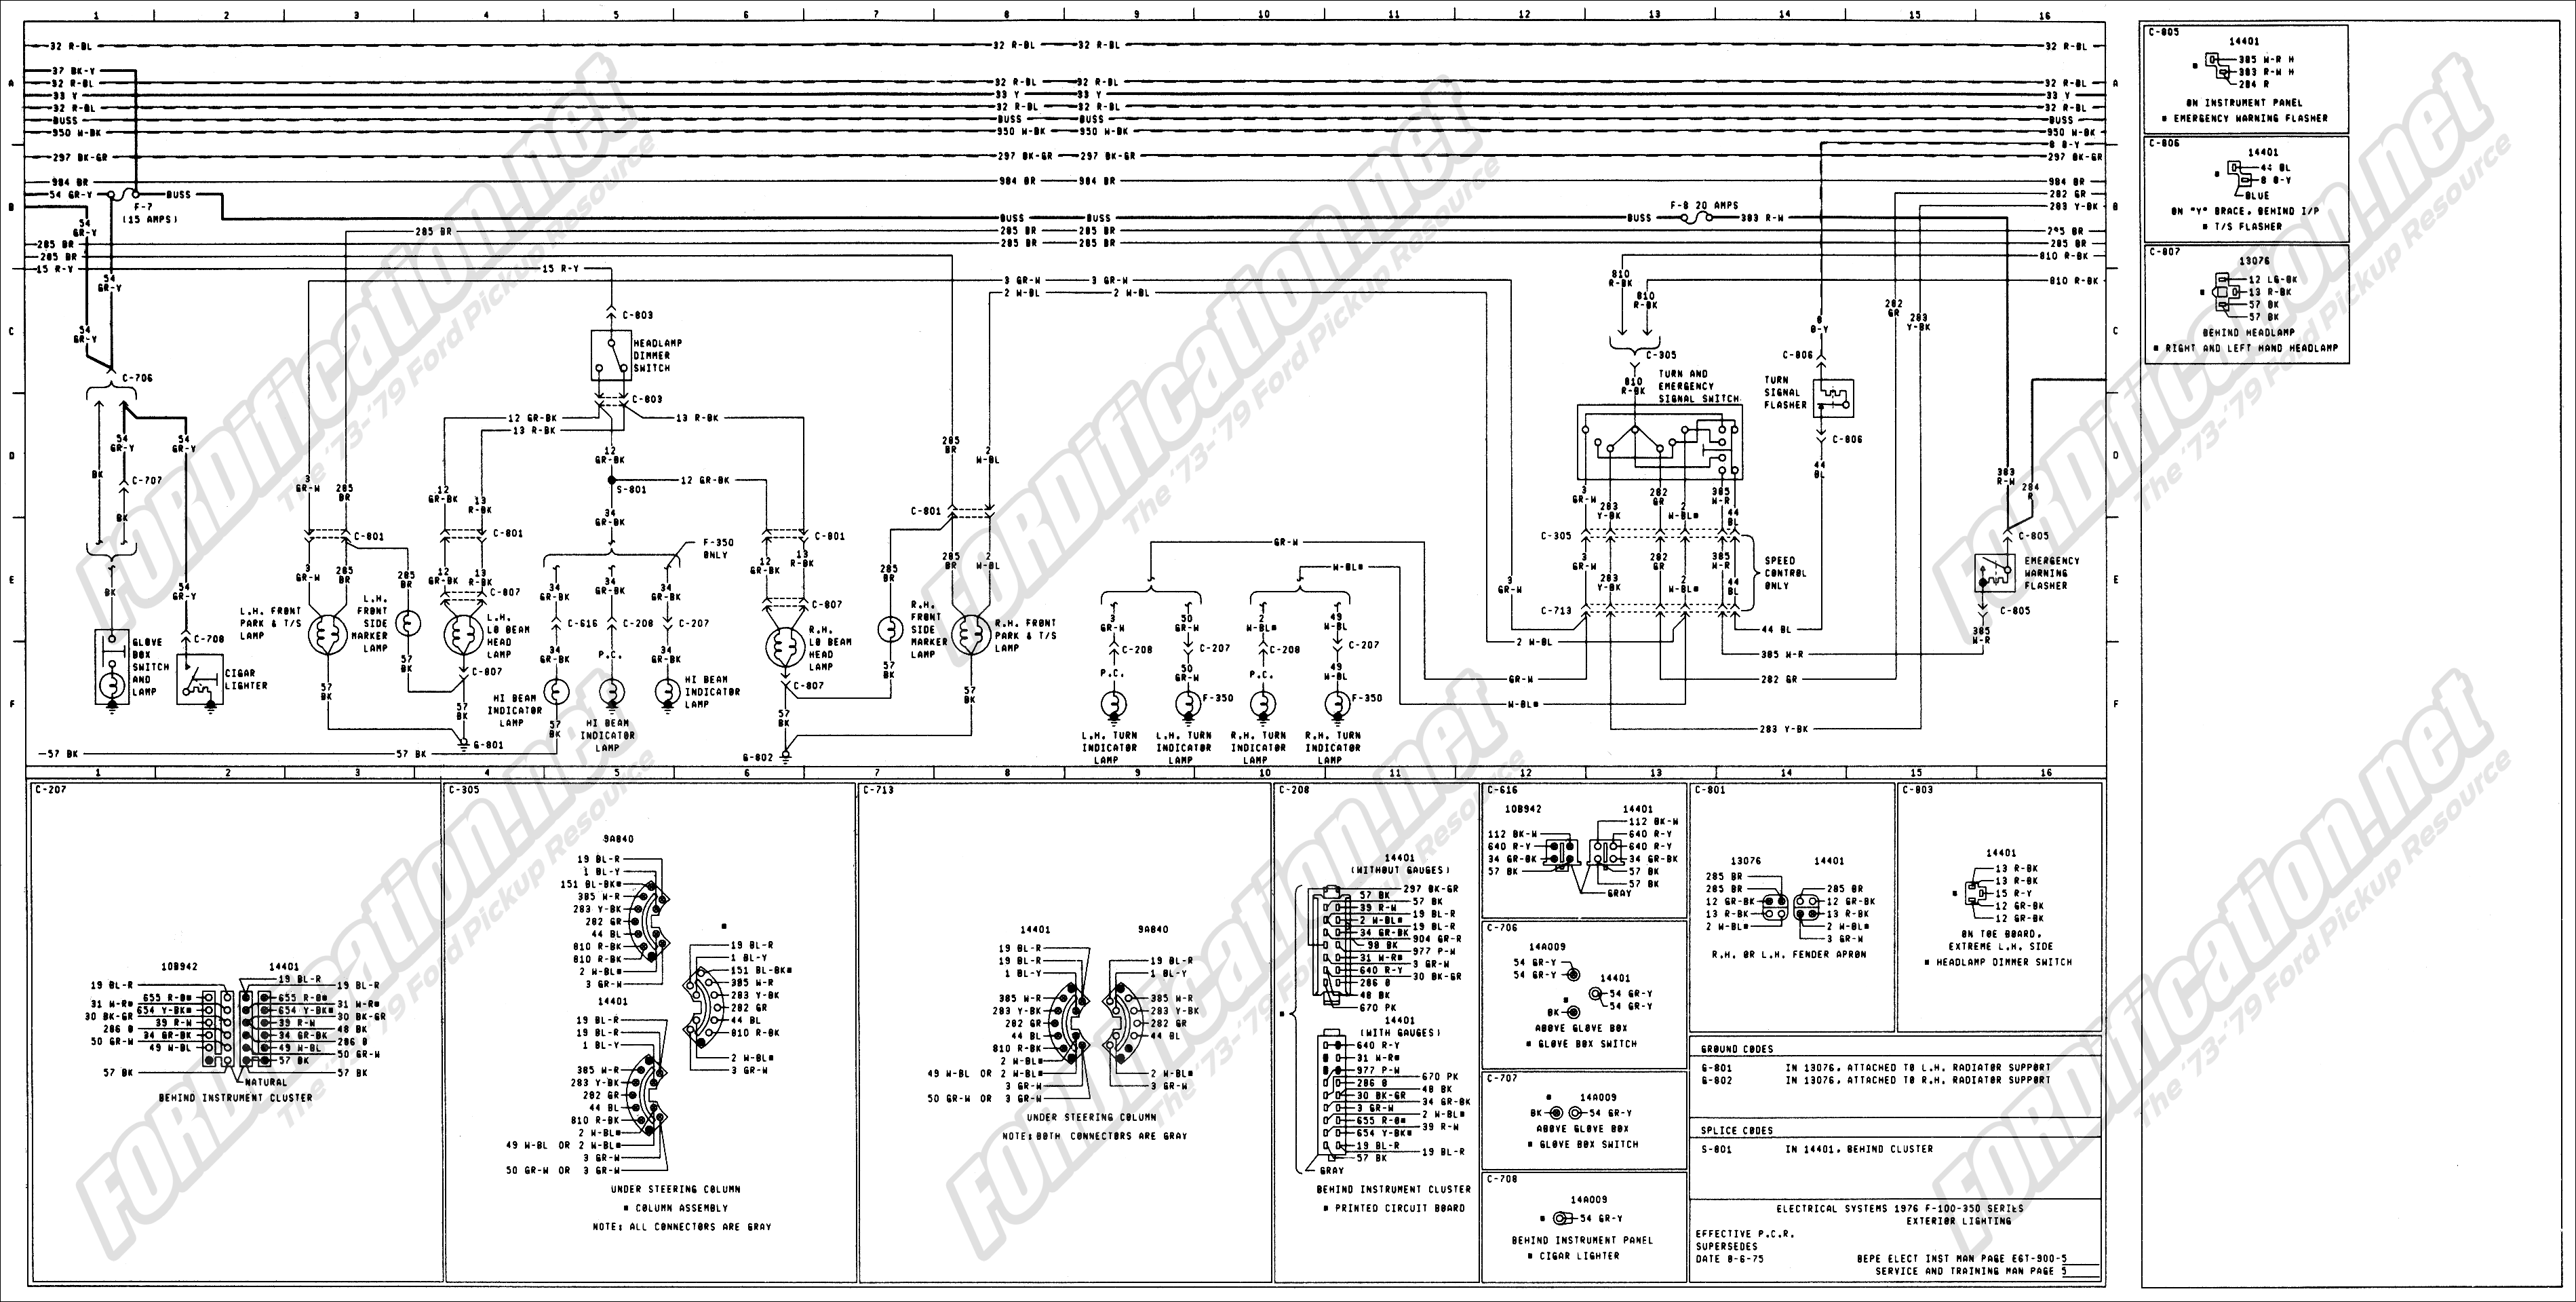 1977 Ford Wiring Harness Schema Diagram Online Wire 1954 Car Library F150